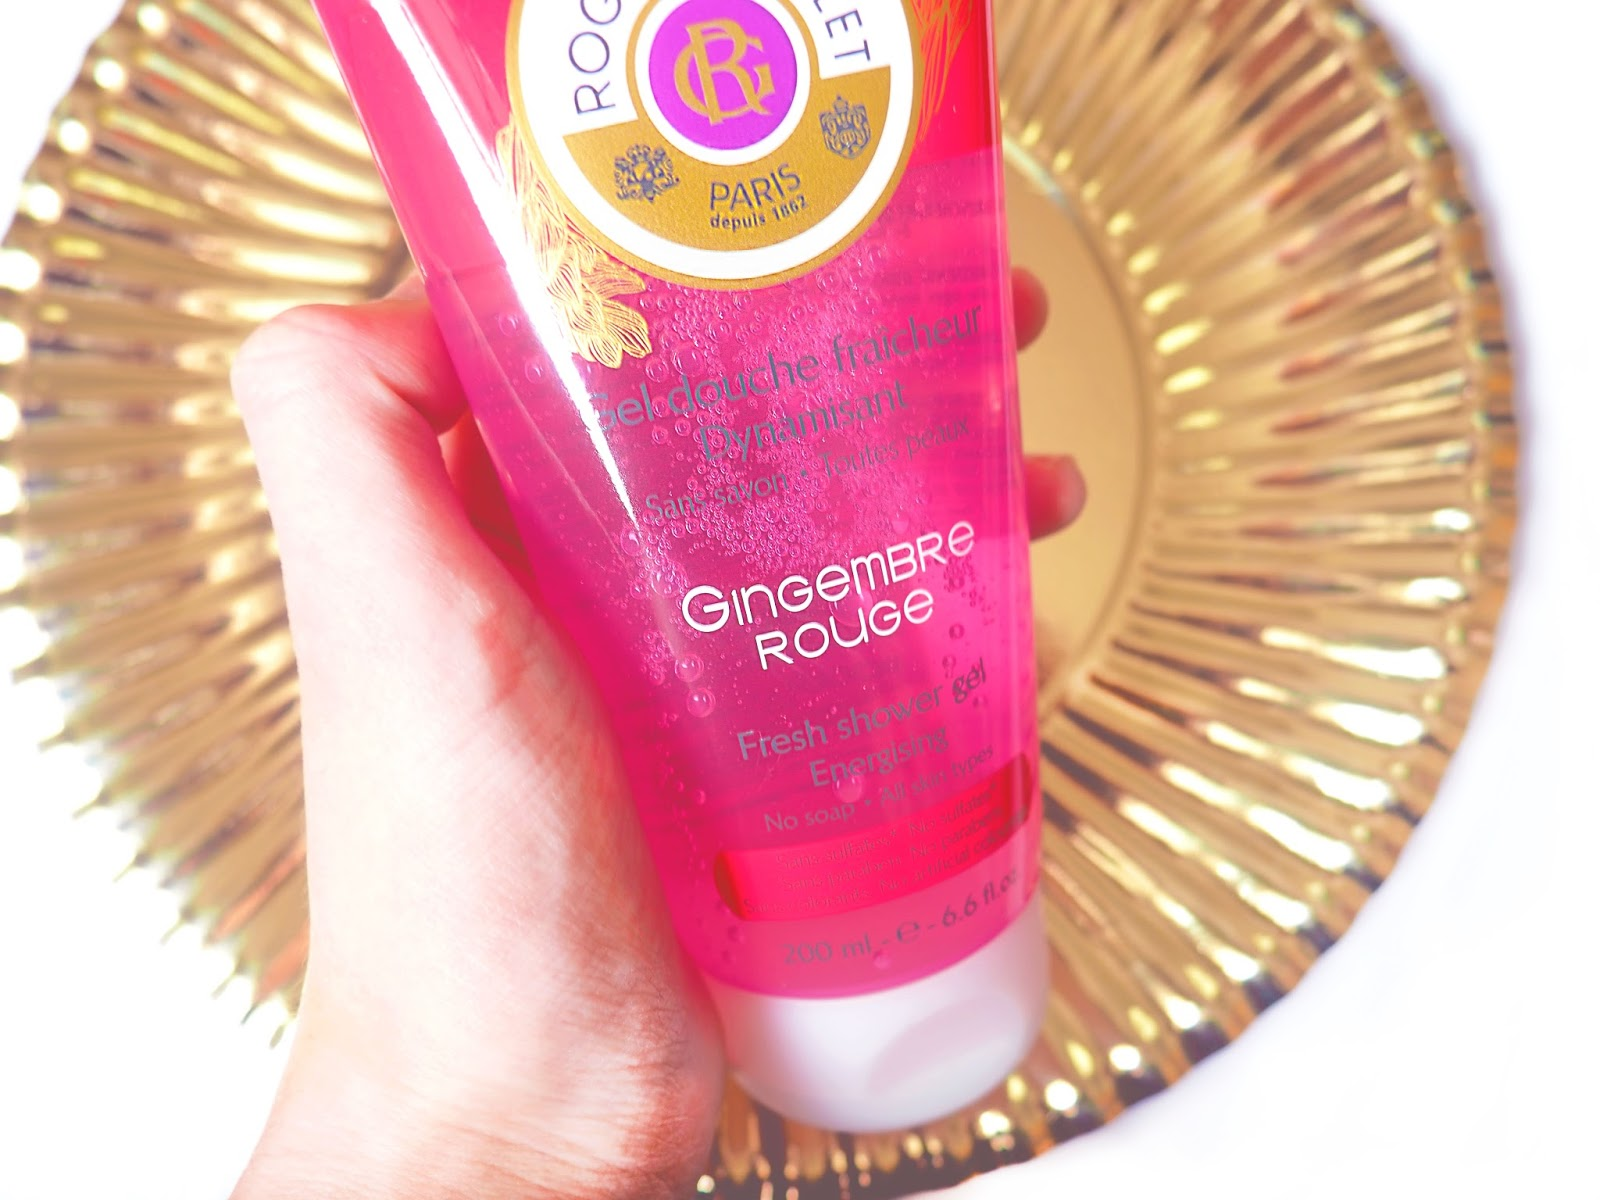 Roger&Gallet Gingembre Rouge Shower Gel Review